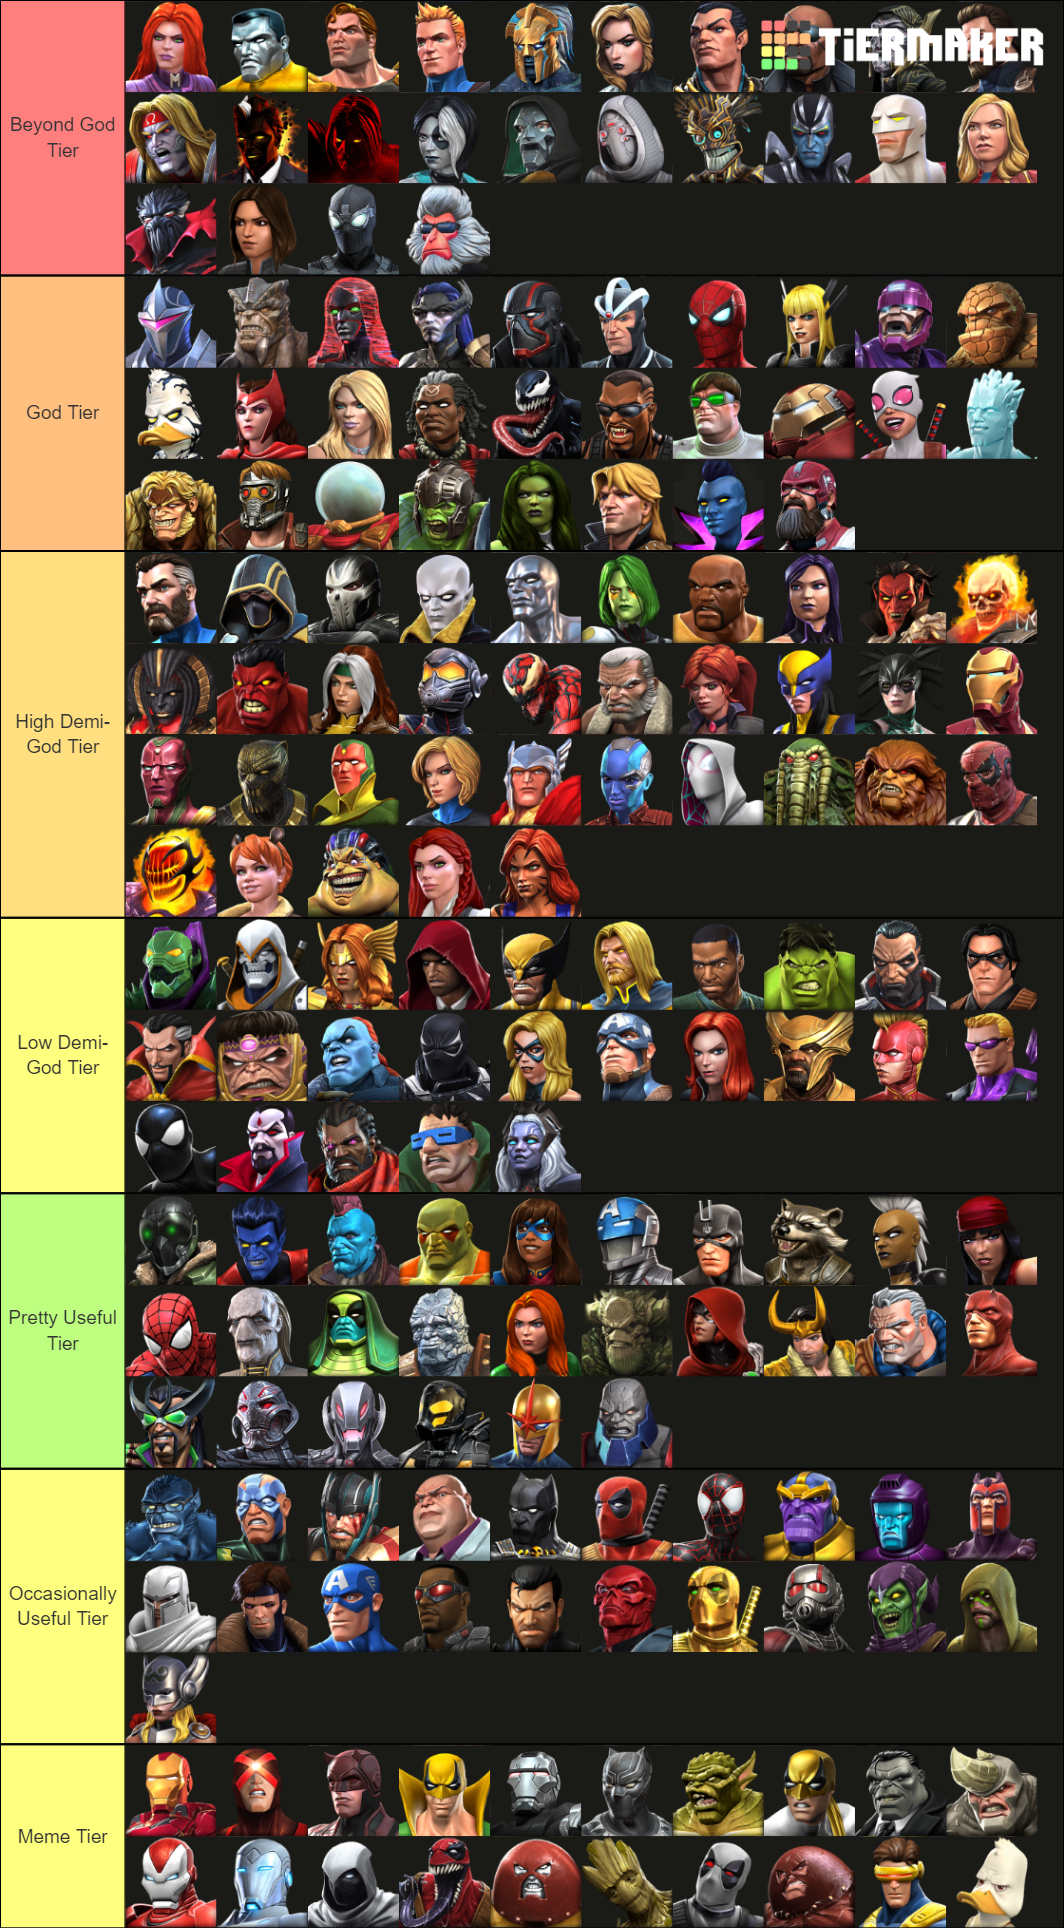 What Are Your Thoughts On My July 2020 Tier List Marvel Contest Of Champions